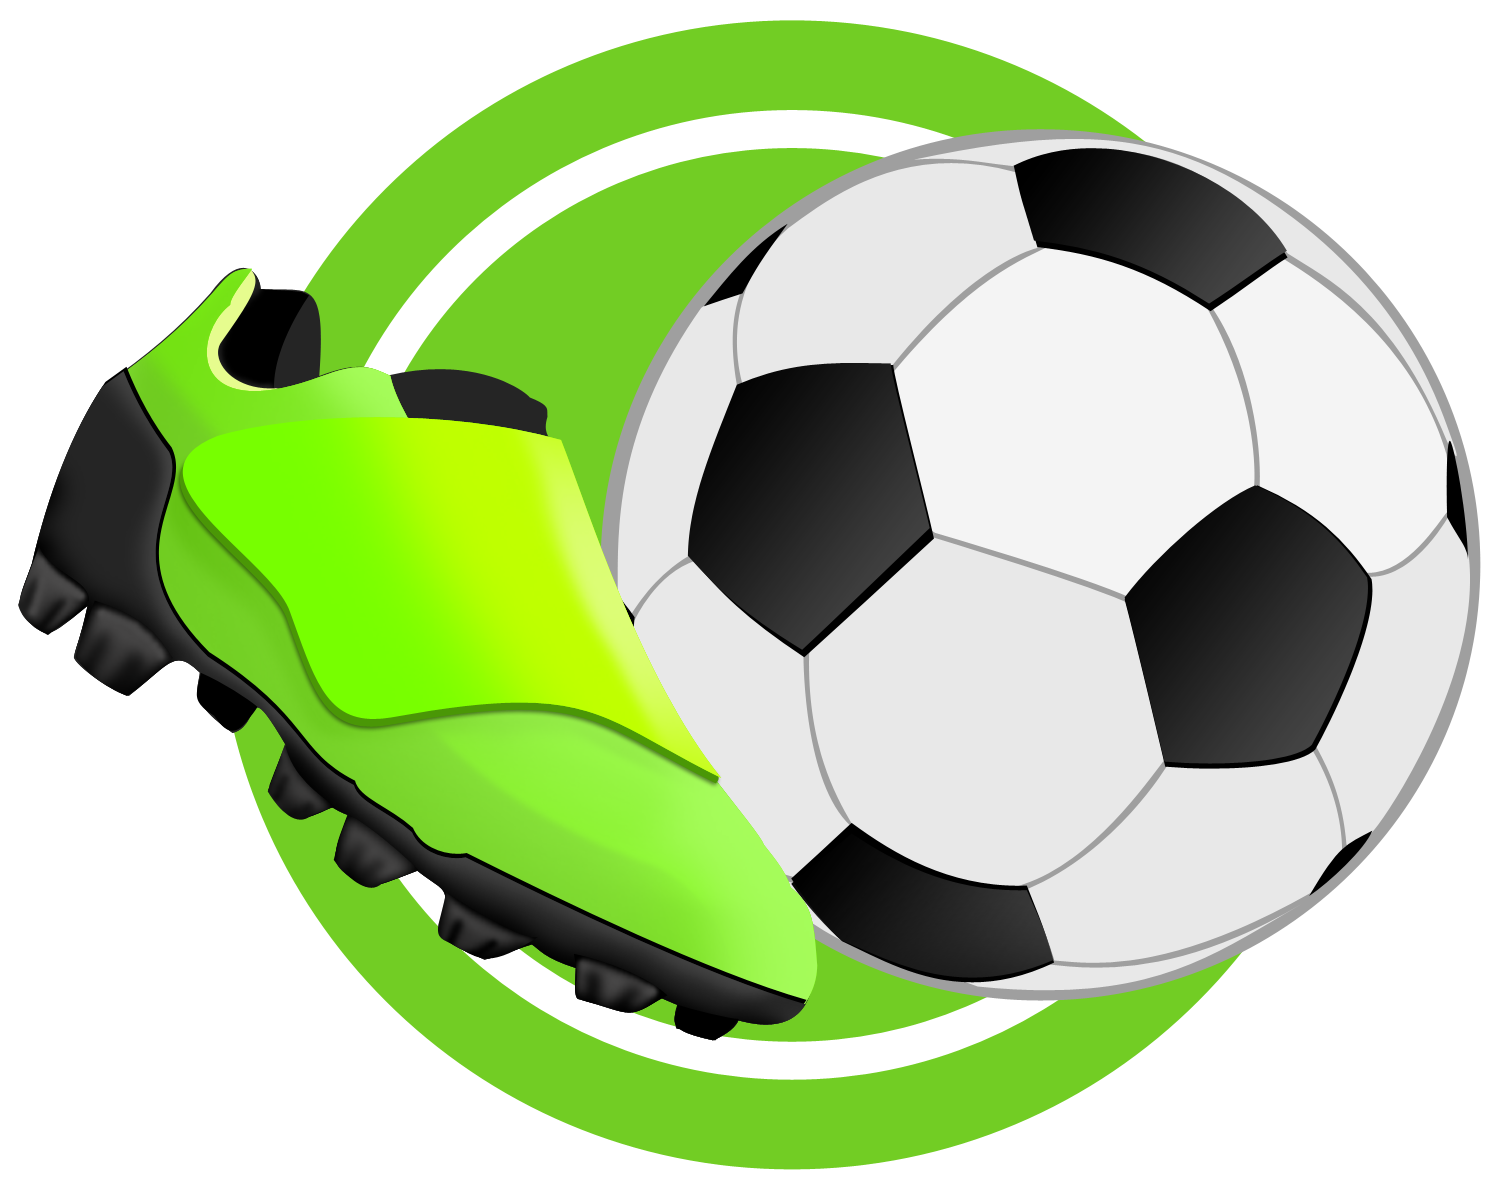 High Resolution Football Png Clipart 25010 Free Icons And Png